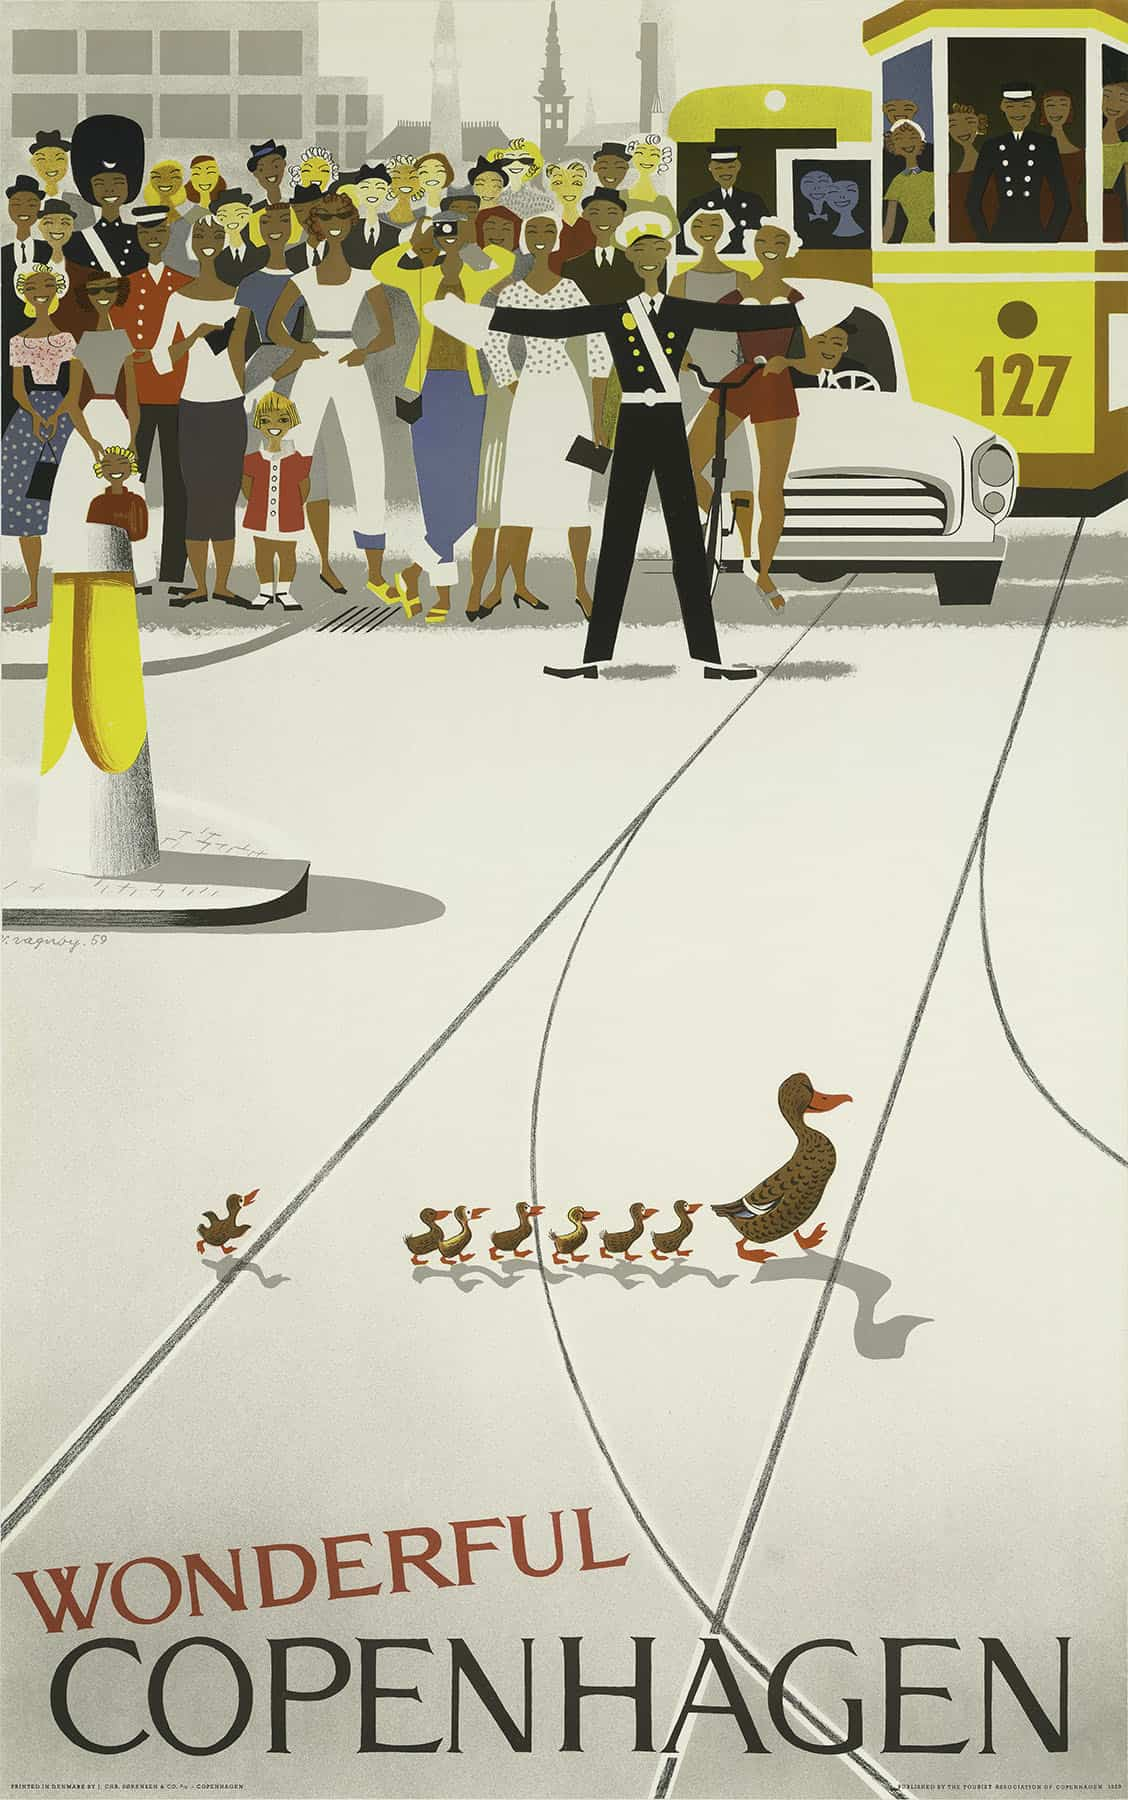 1959 Wonderful Copenhagen Tourism Poster